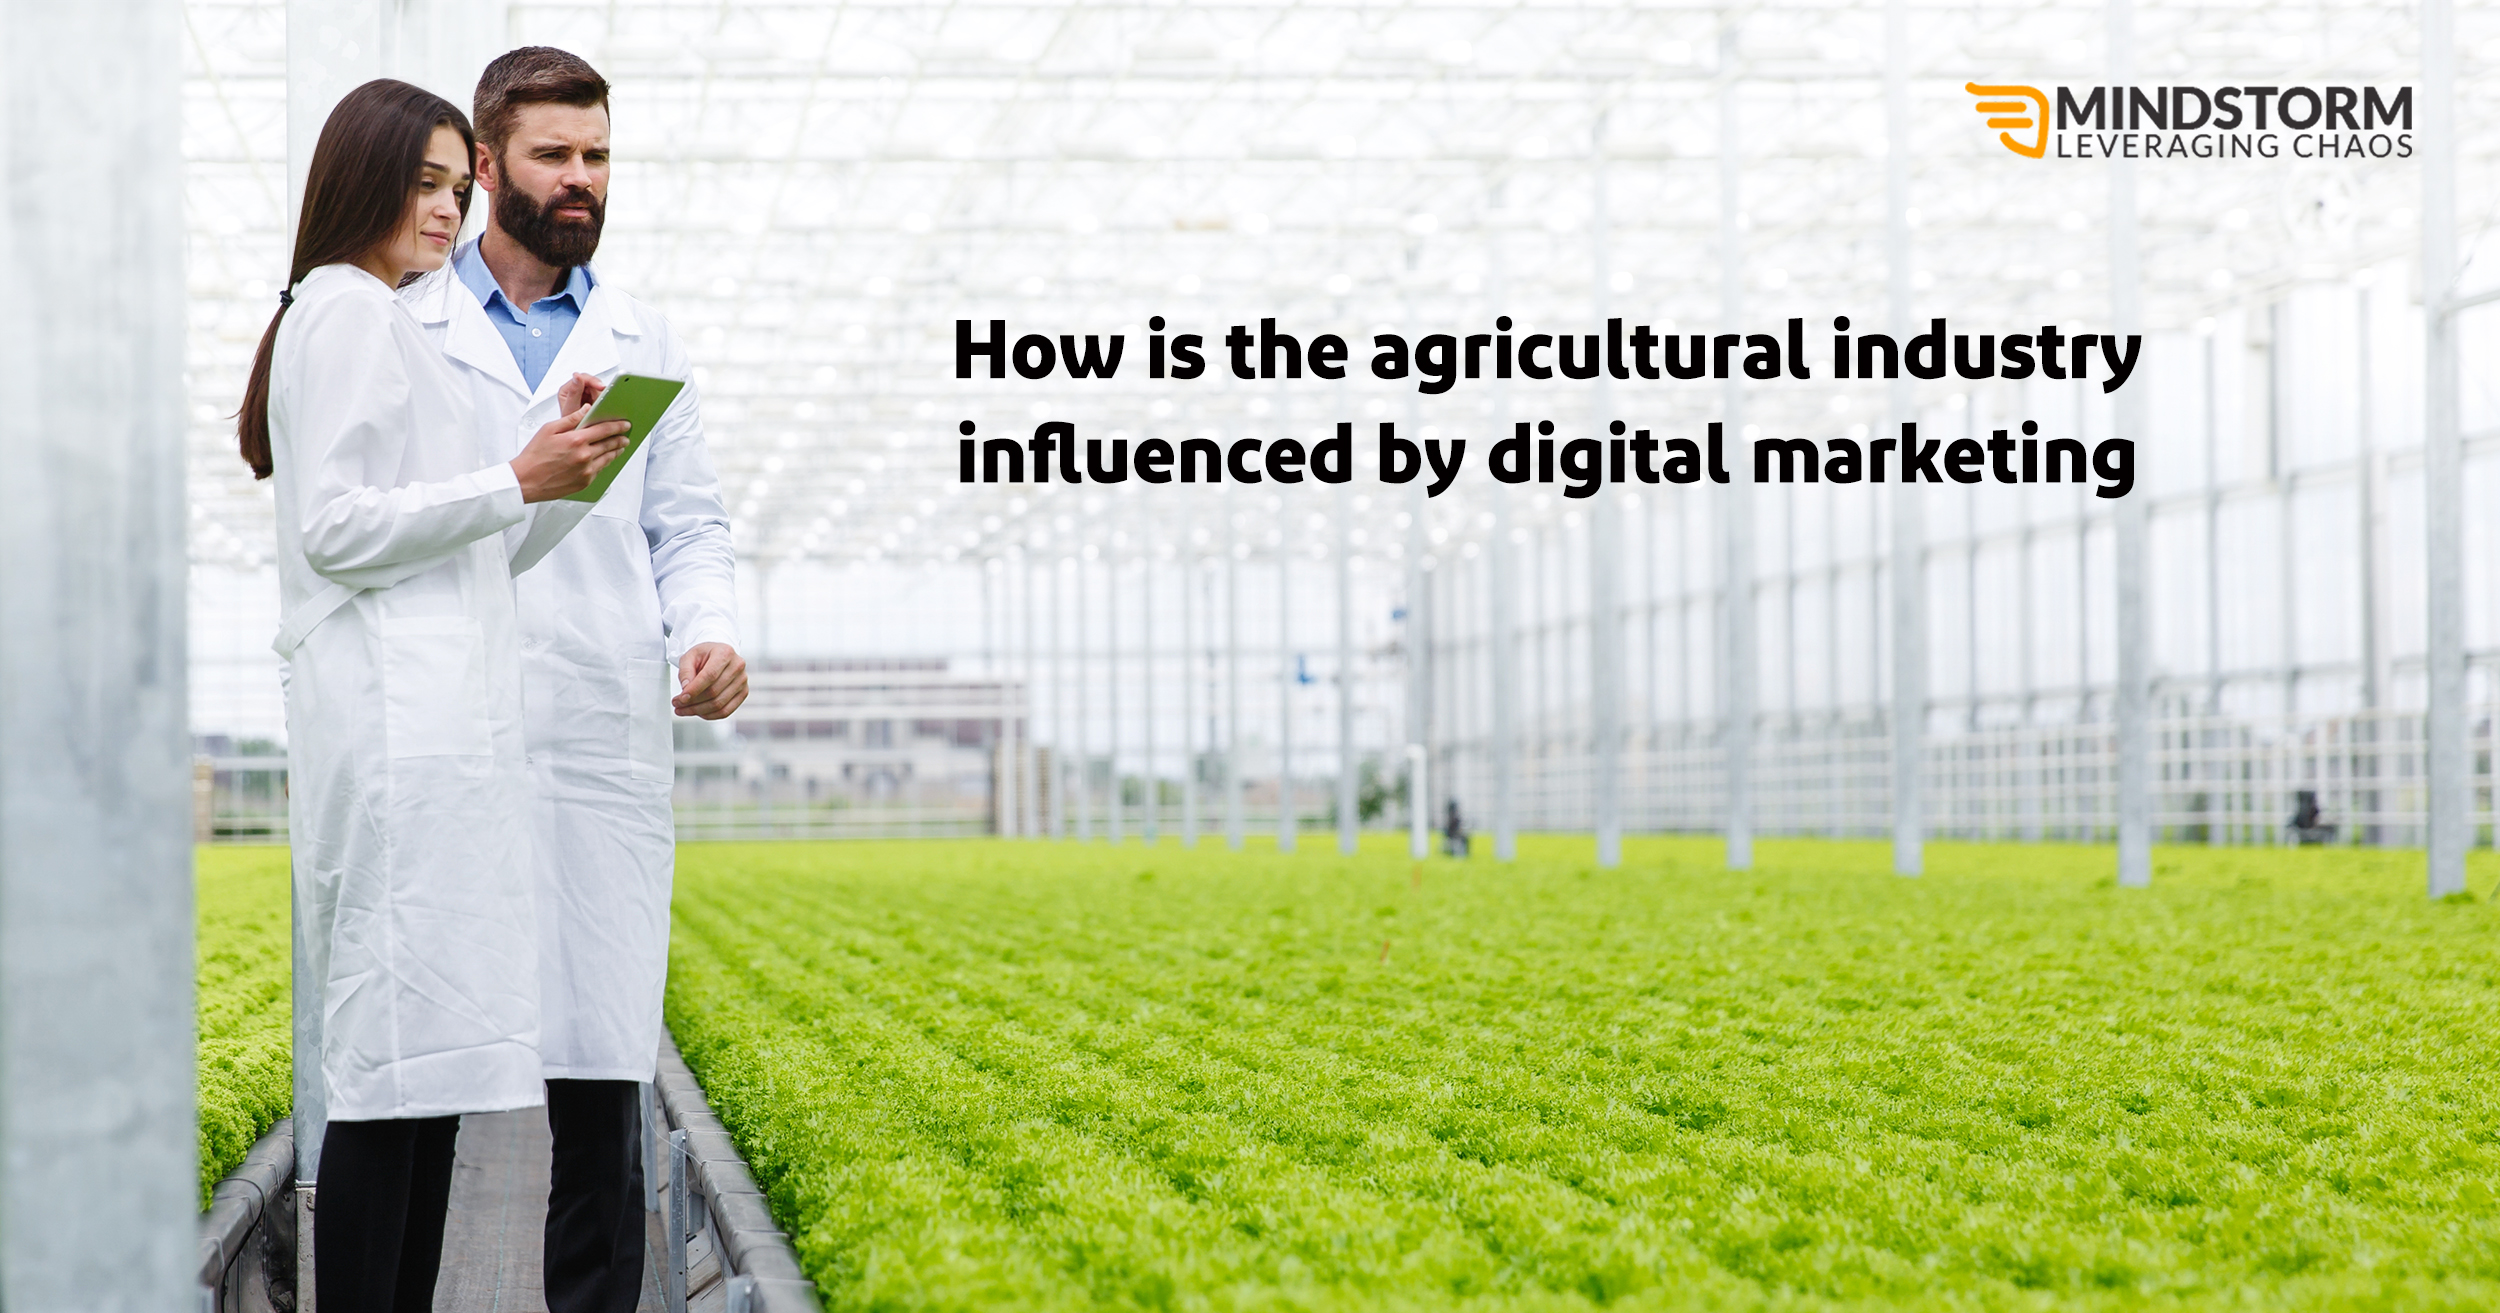 How is the Agriculture Industry influenced by Digital Marketing?